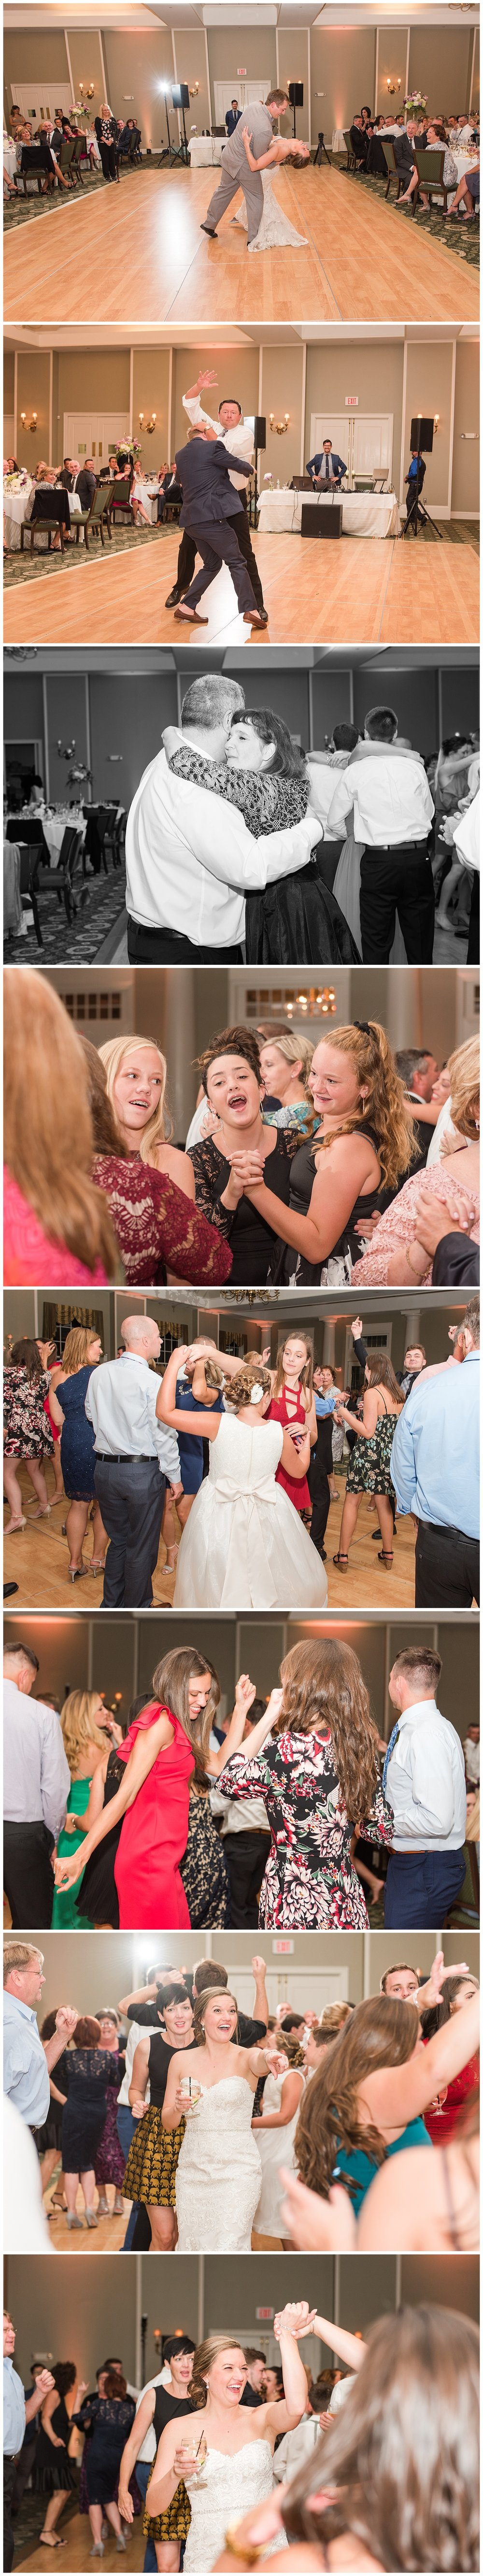 september9-charter-oak-country-club-wedding-photography-hudson-massachusetts-34.jpg